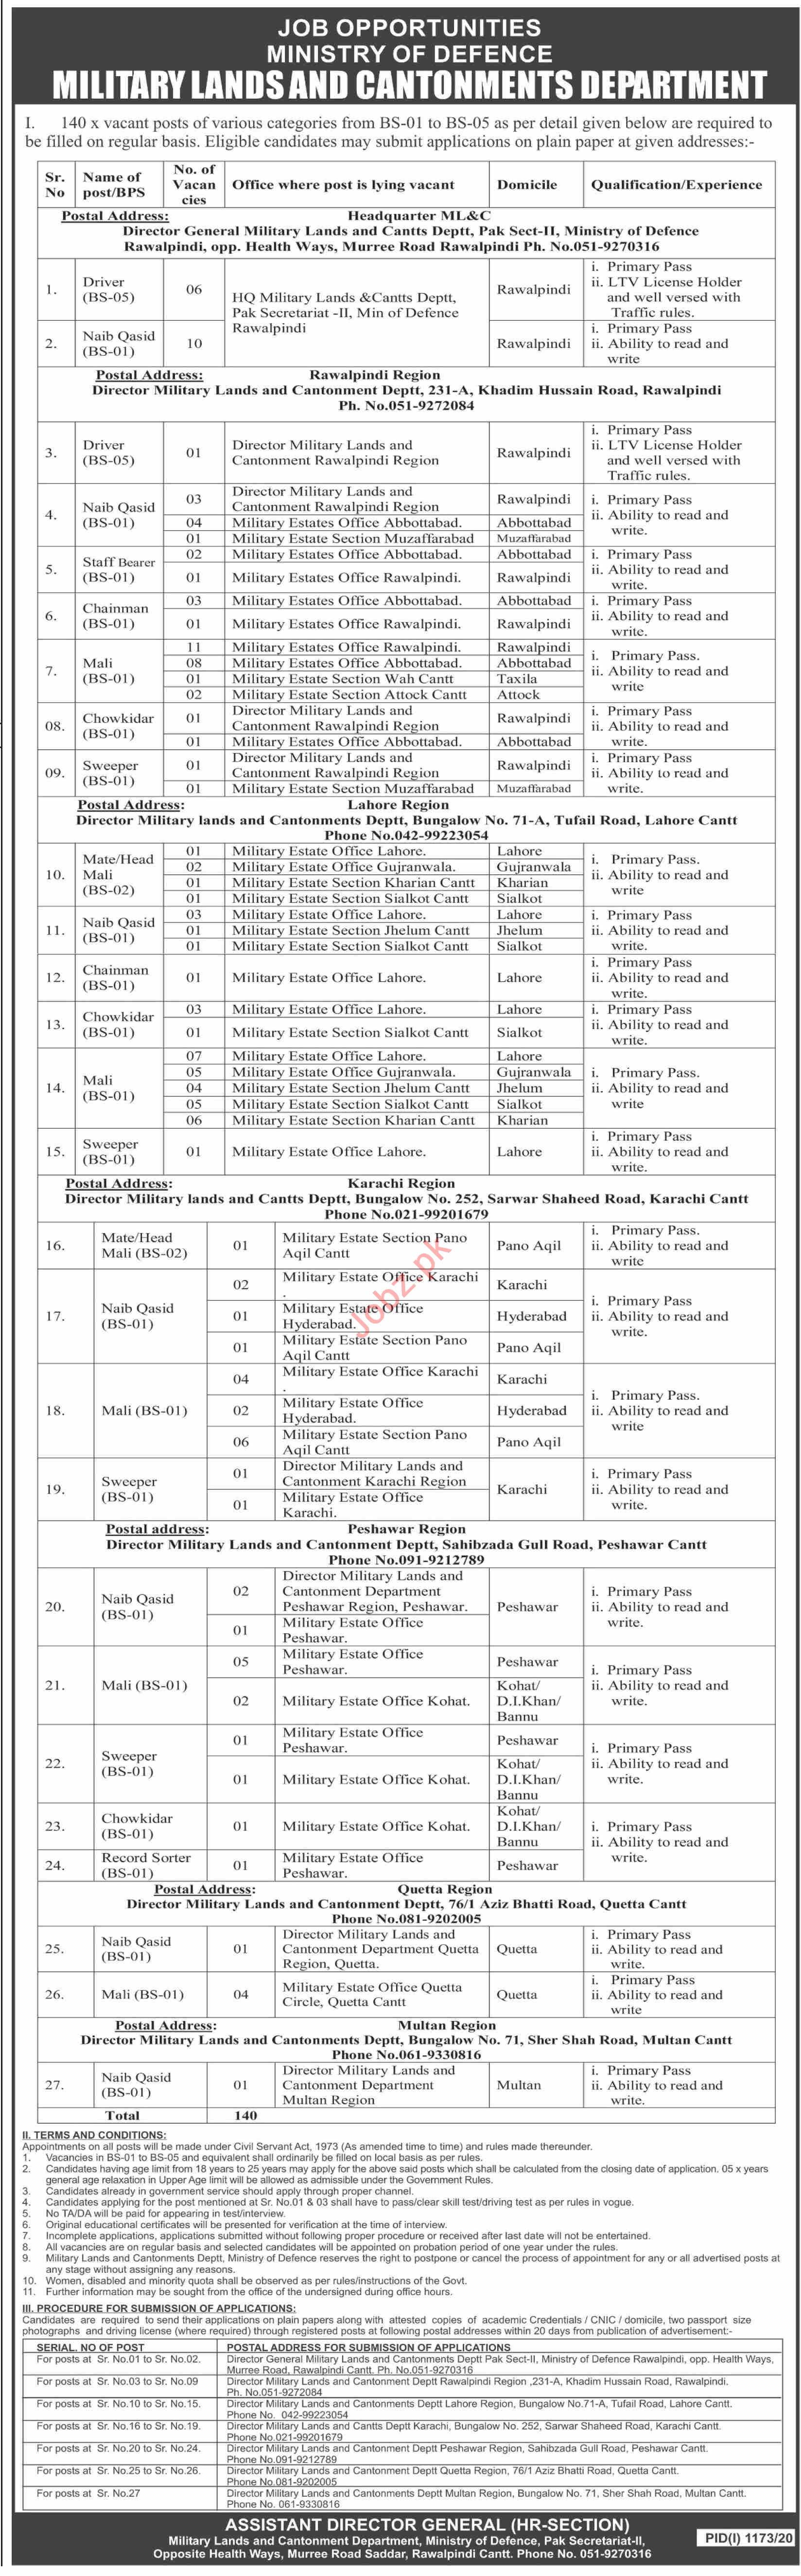 Military Lands & Cantonment Department Jobs 2020 for Drivers